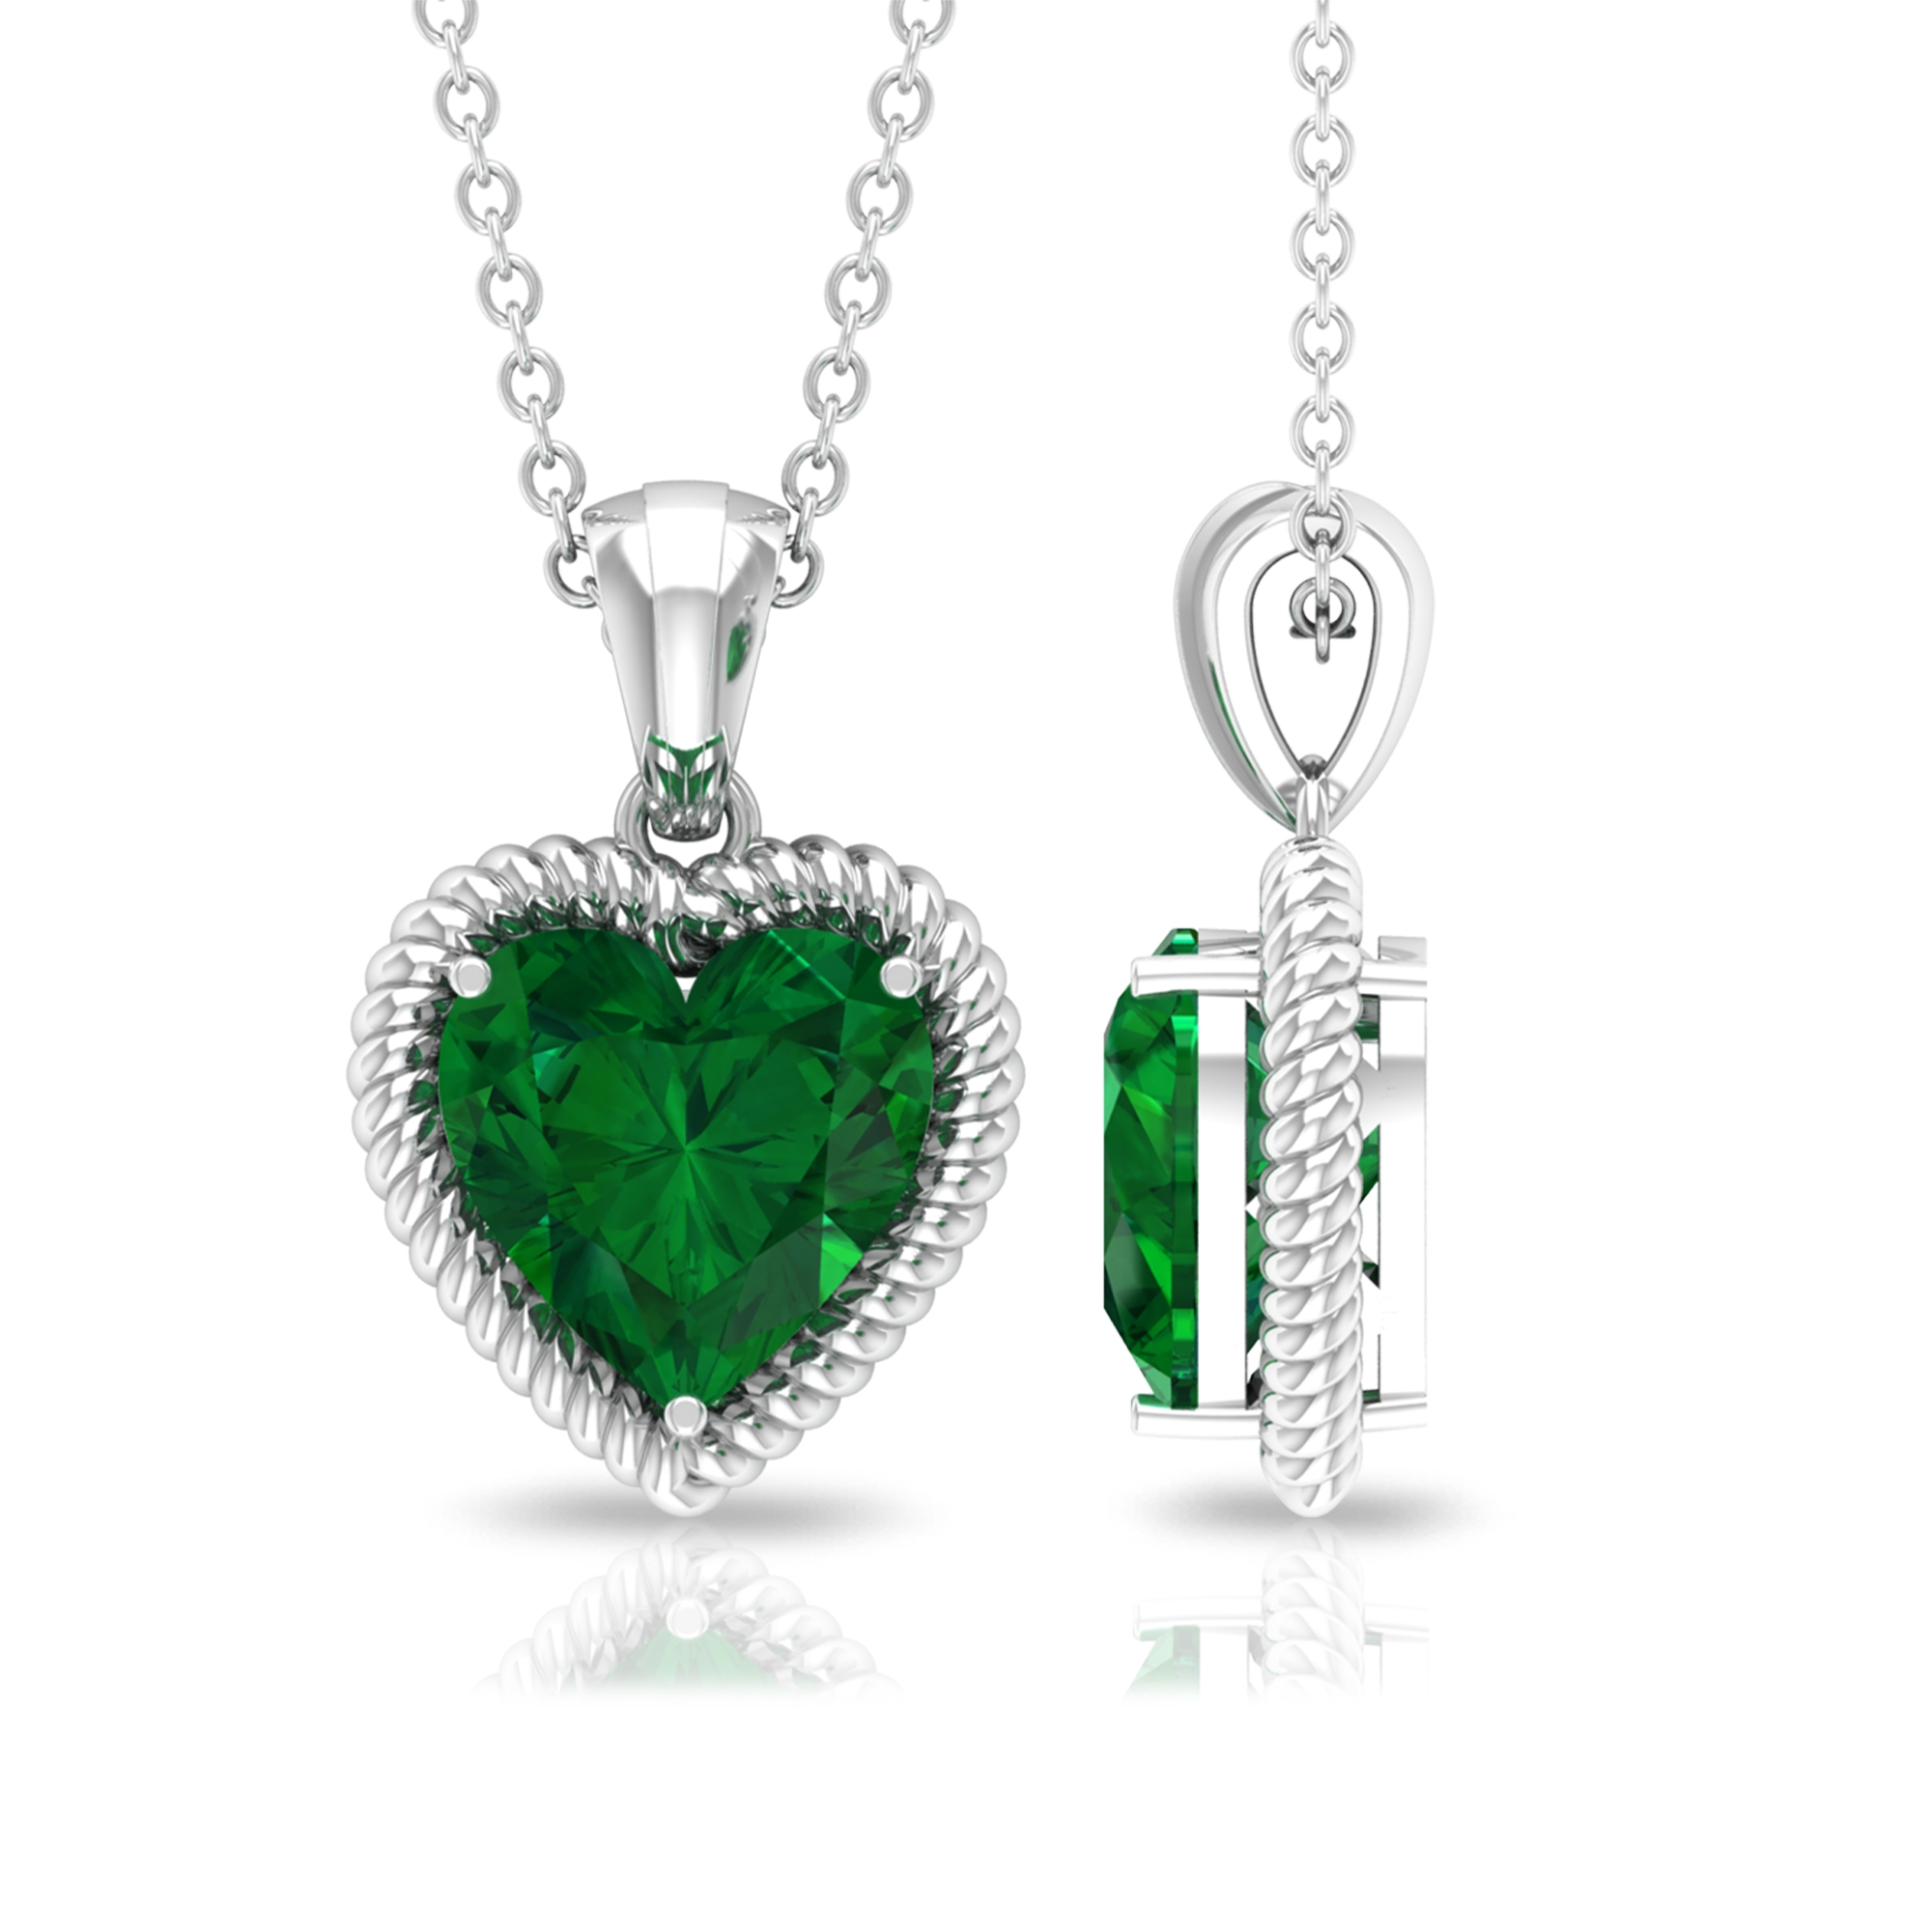 8 MM Heart Shape Emerald Solitaire Pendant in 3 Prong Setting with Rope Frame